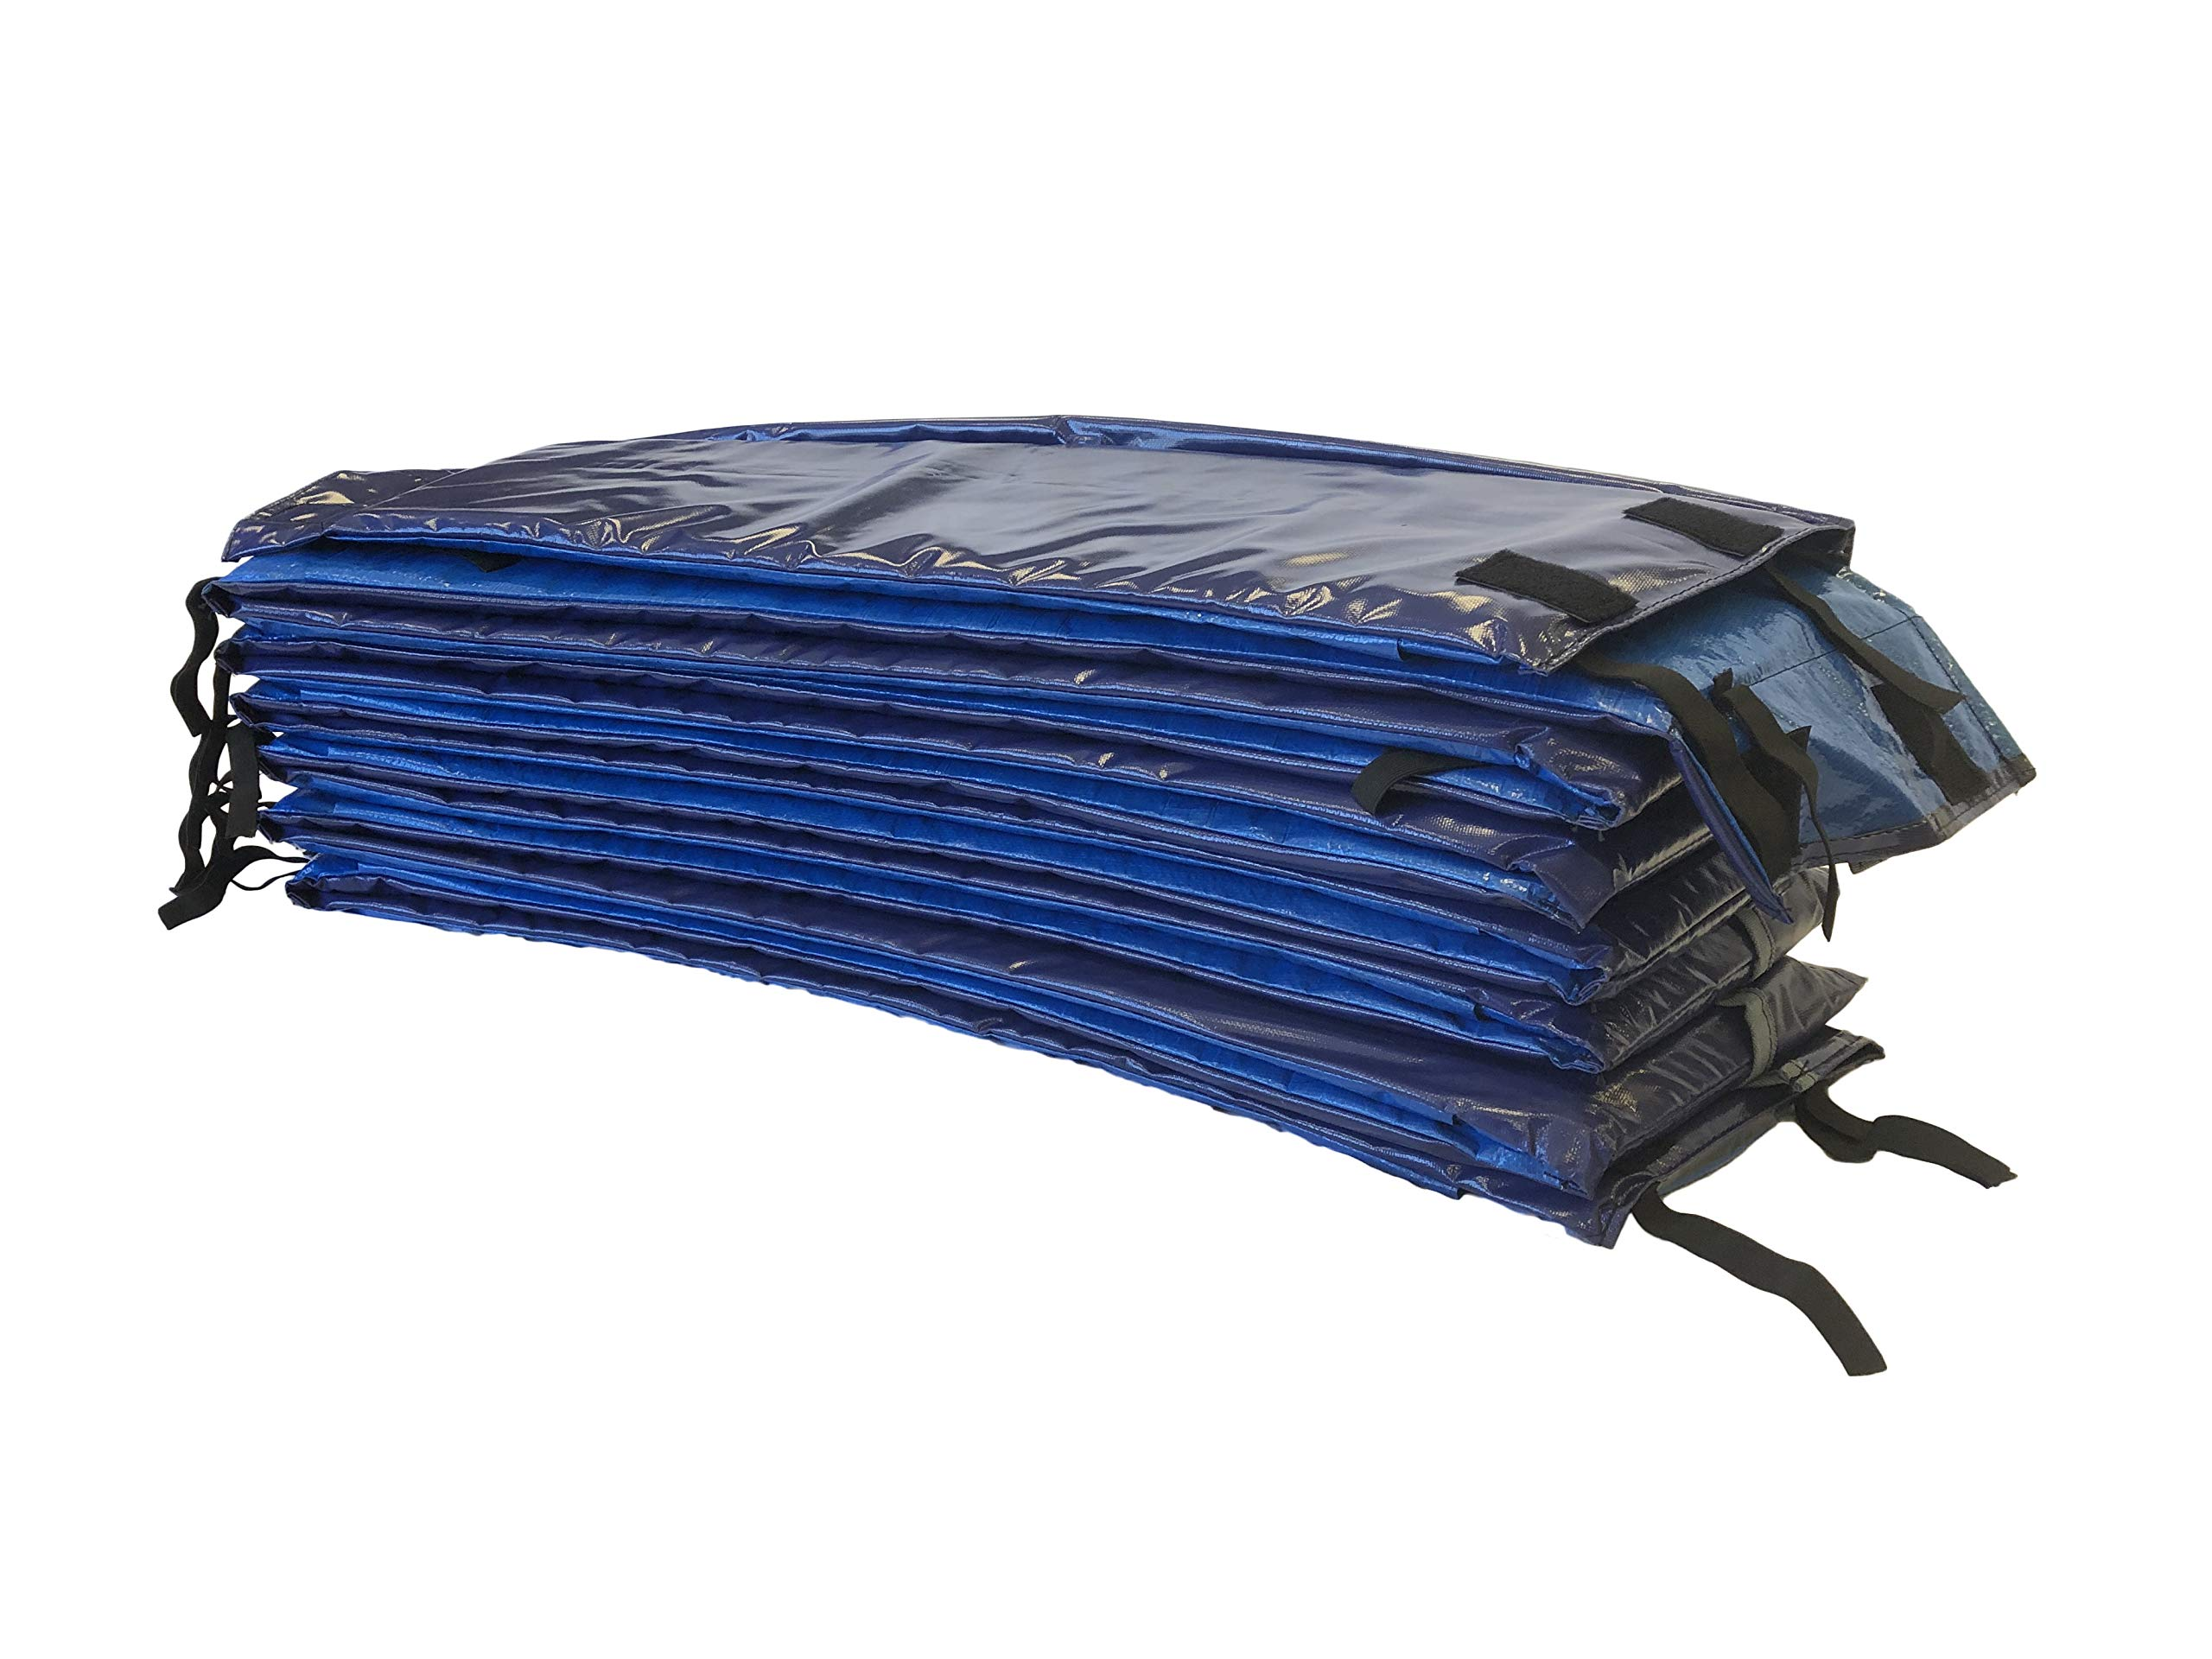 Trampoline Pro Trampoline Pads | Round 12ft & 14ft & 15ft | Square 13ft x 13ft & 14ft x 14ft | Blue and Green (Premium Royal Blue, 14 ft & 15 ft Premium) by Trampoline Pro